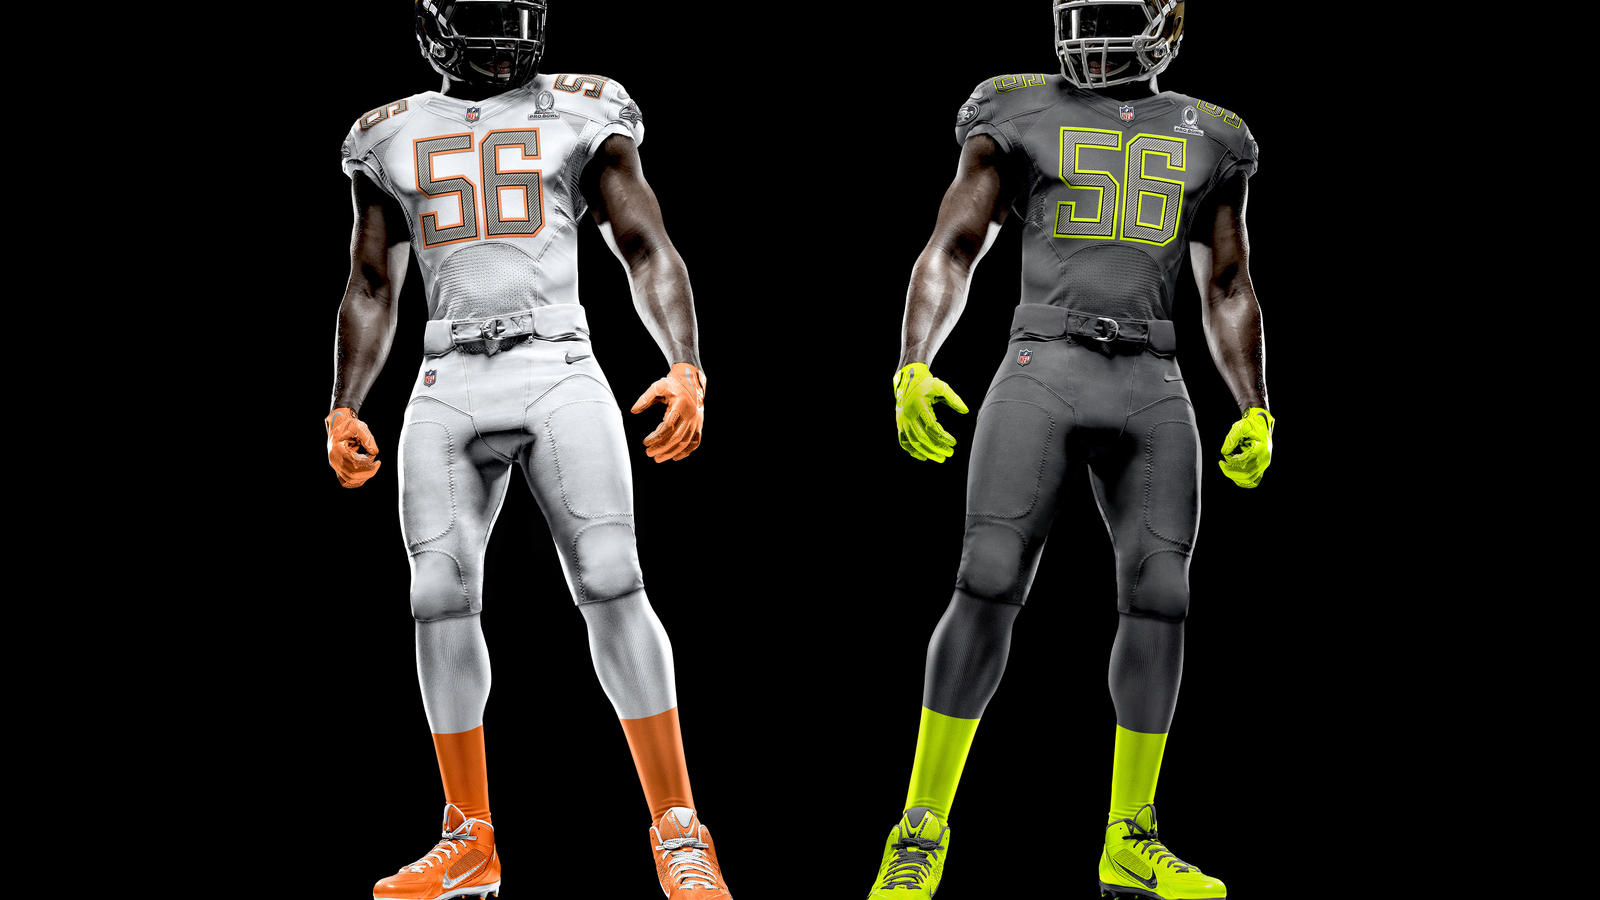 best sneakers 68ac8 61236 NFL Nike Elite 51 Pro Bowl Uniforms Unveiled - Nike News